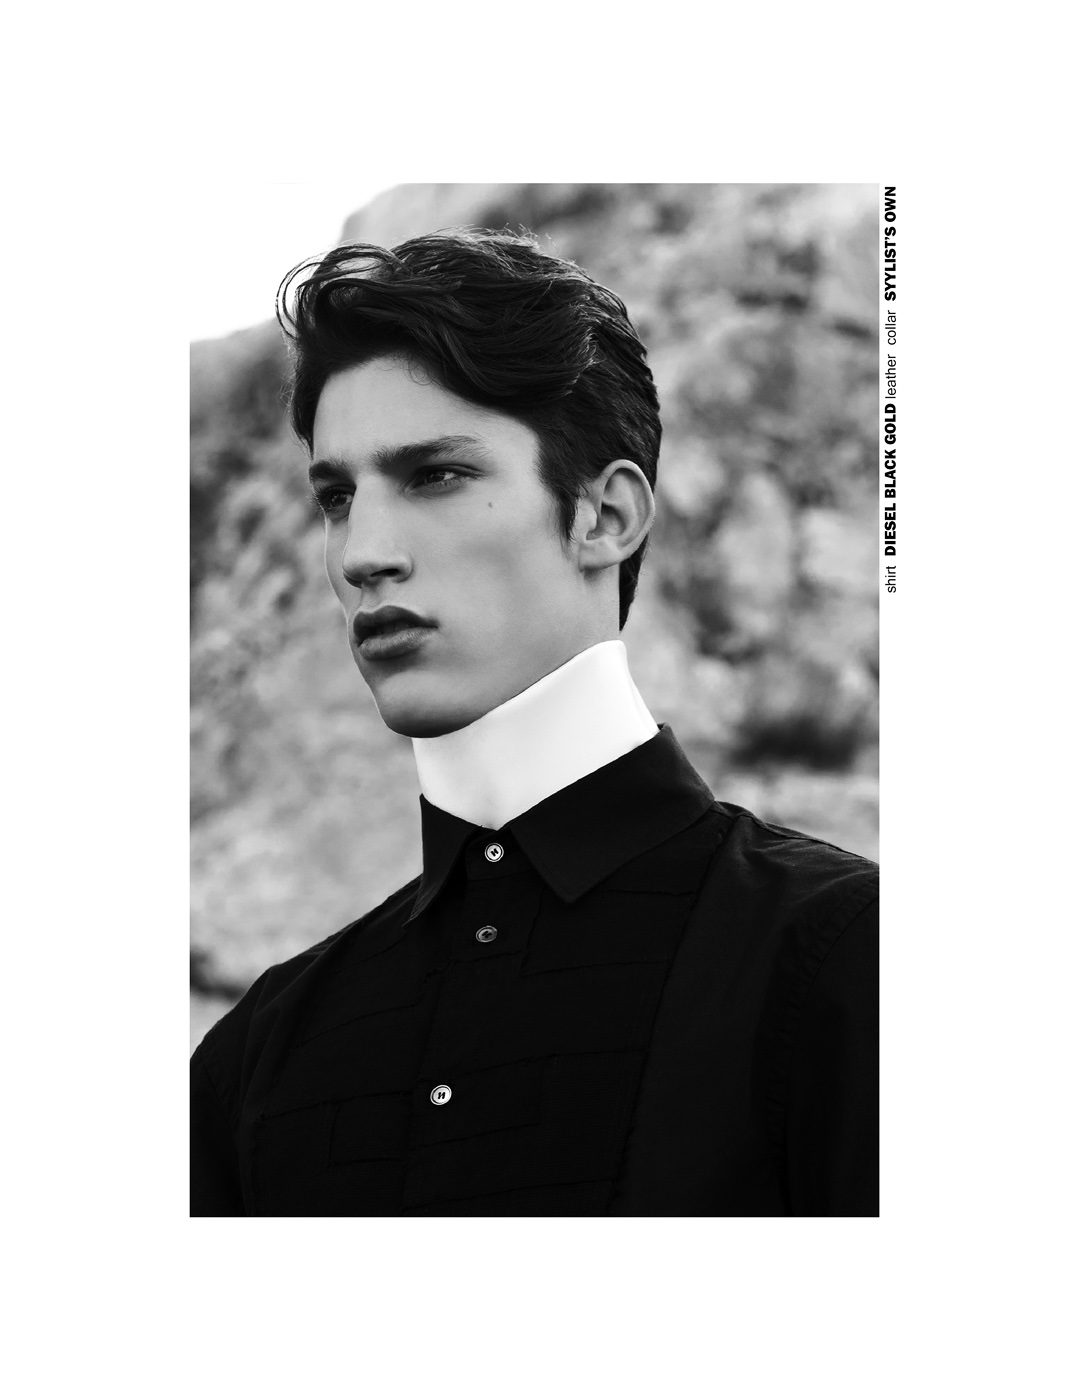 Iasonas Laios by Yannis Tzannis for CHASSEUR MAGAZINE issue #11 - Yours Was The Body